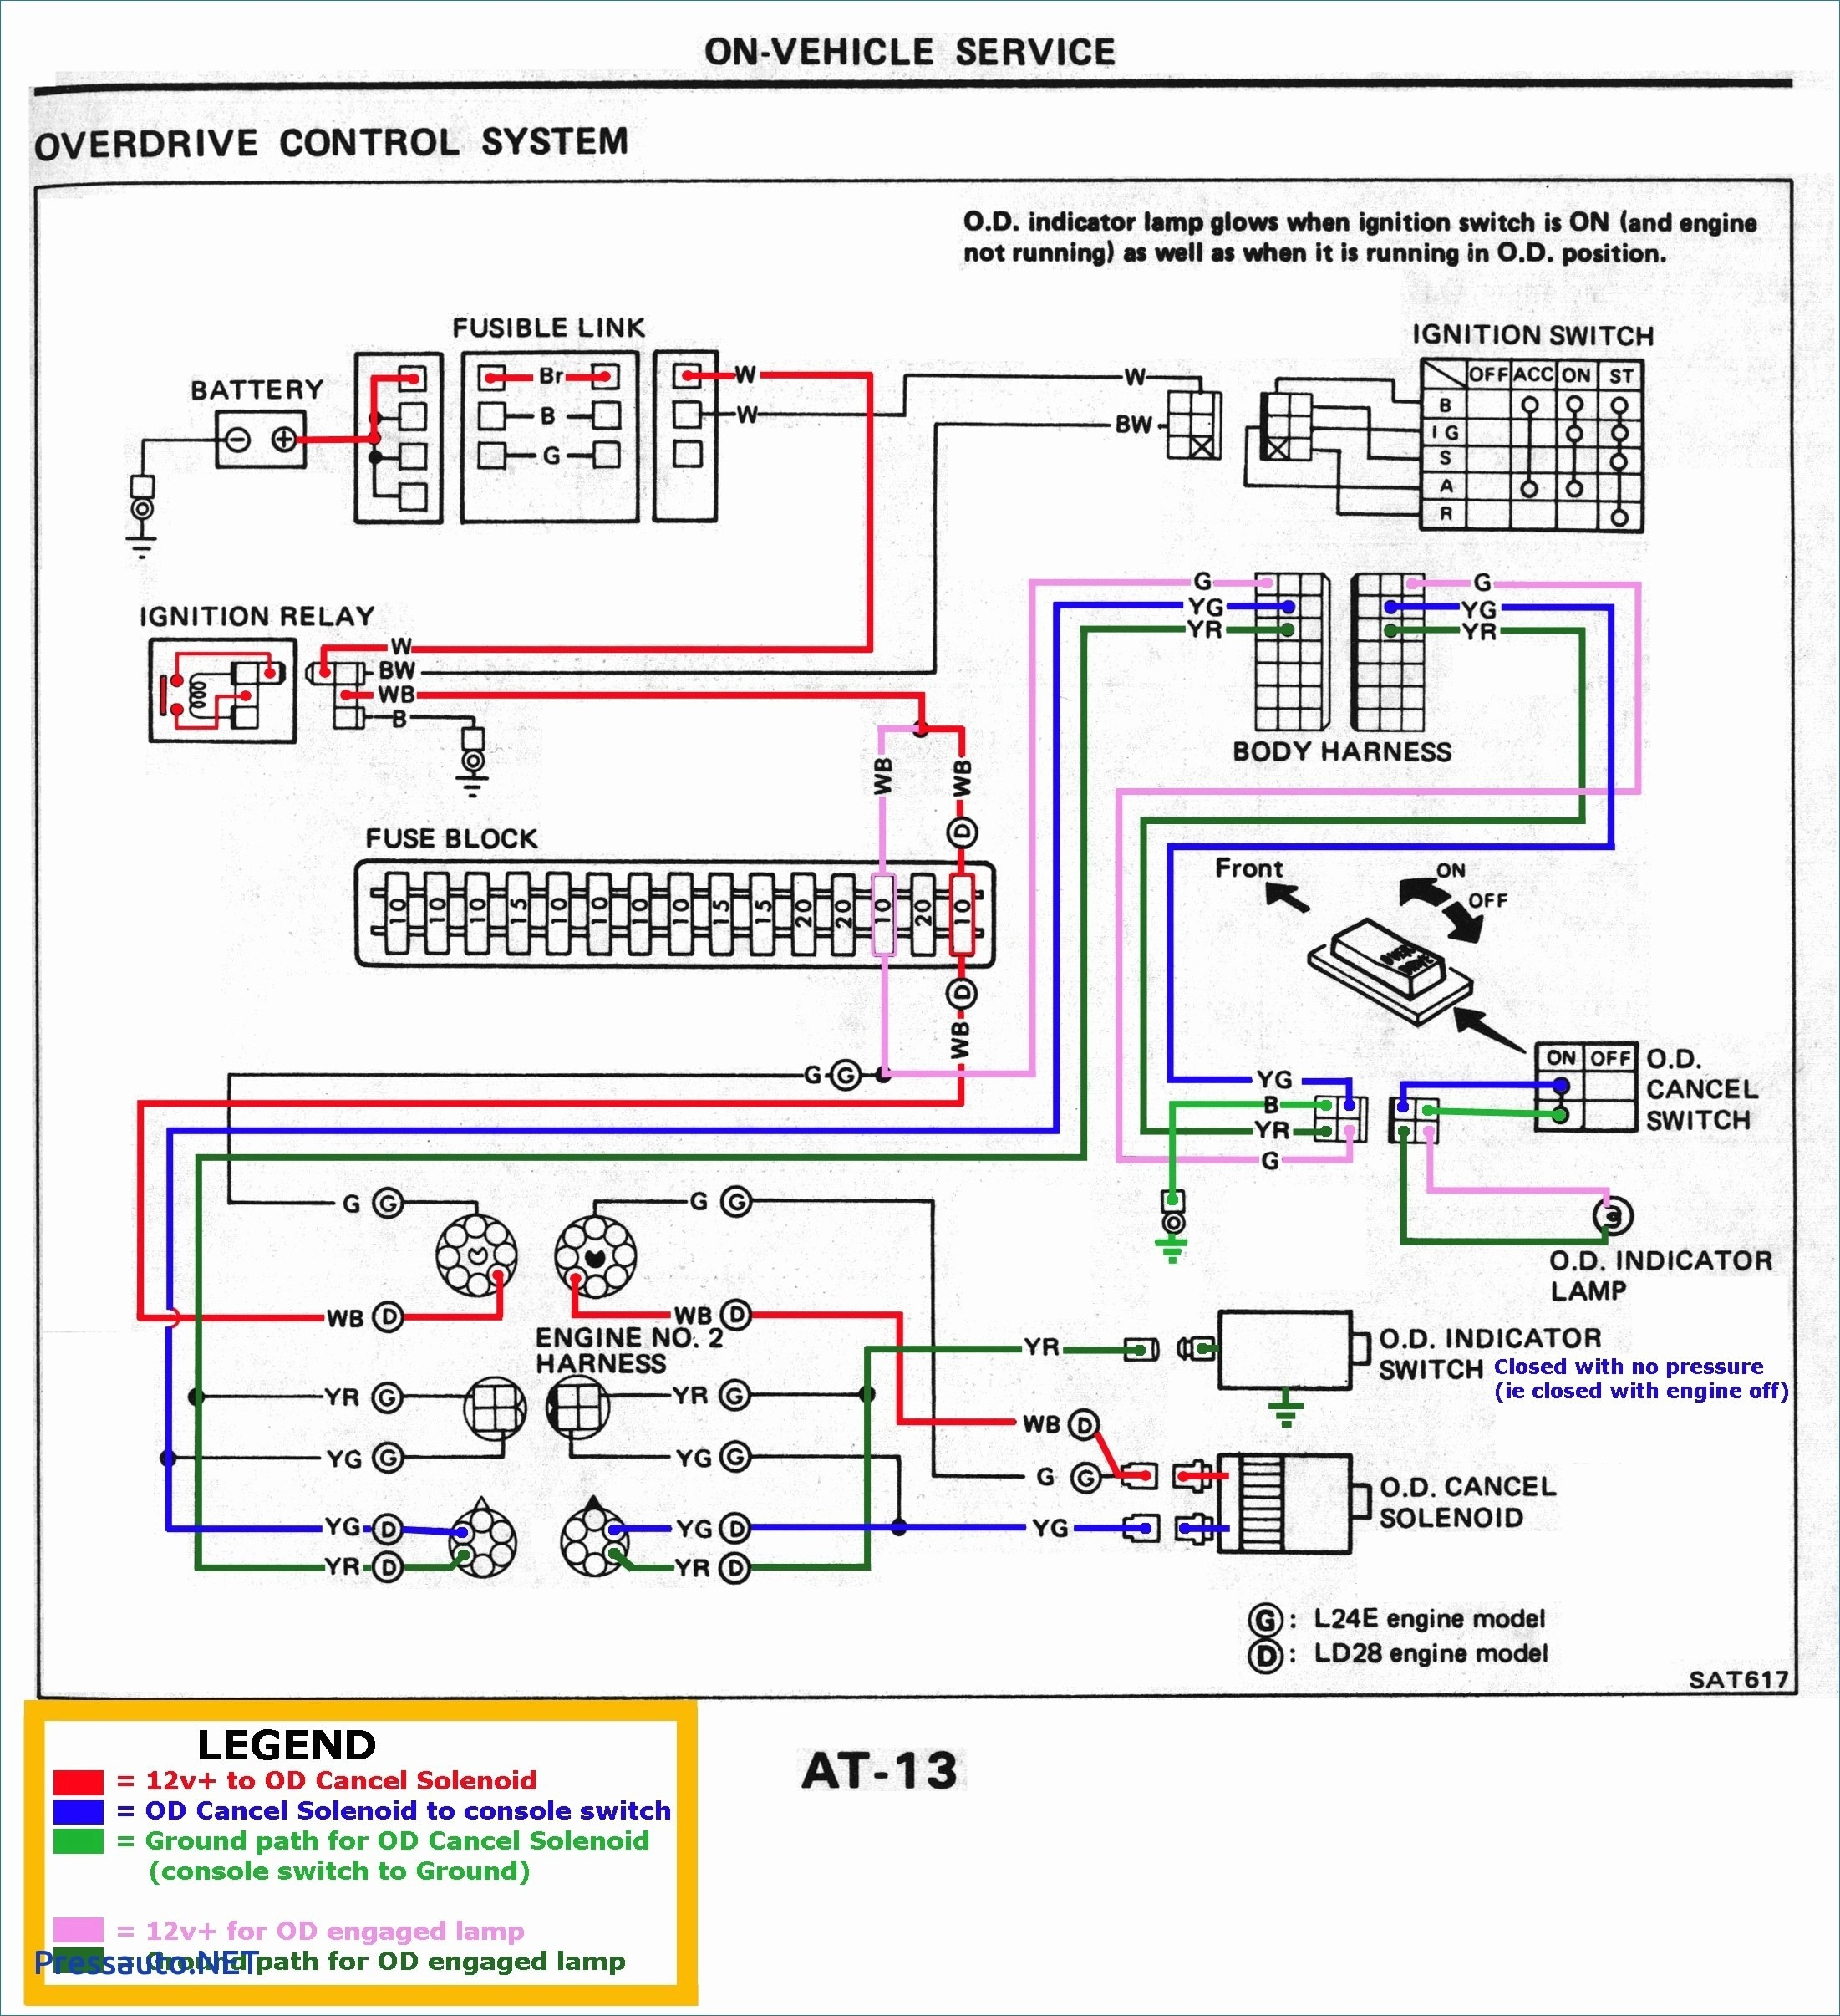 Wiring Diagram Color Codes Fresh Wiring Diagrams for toyota Corolla Best toyota Wiring Diagram Color